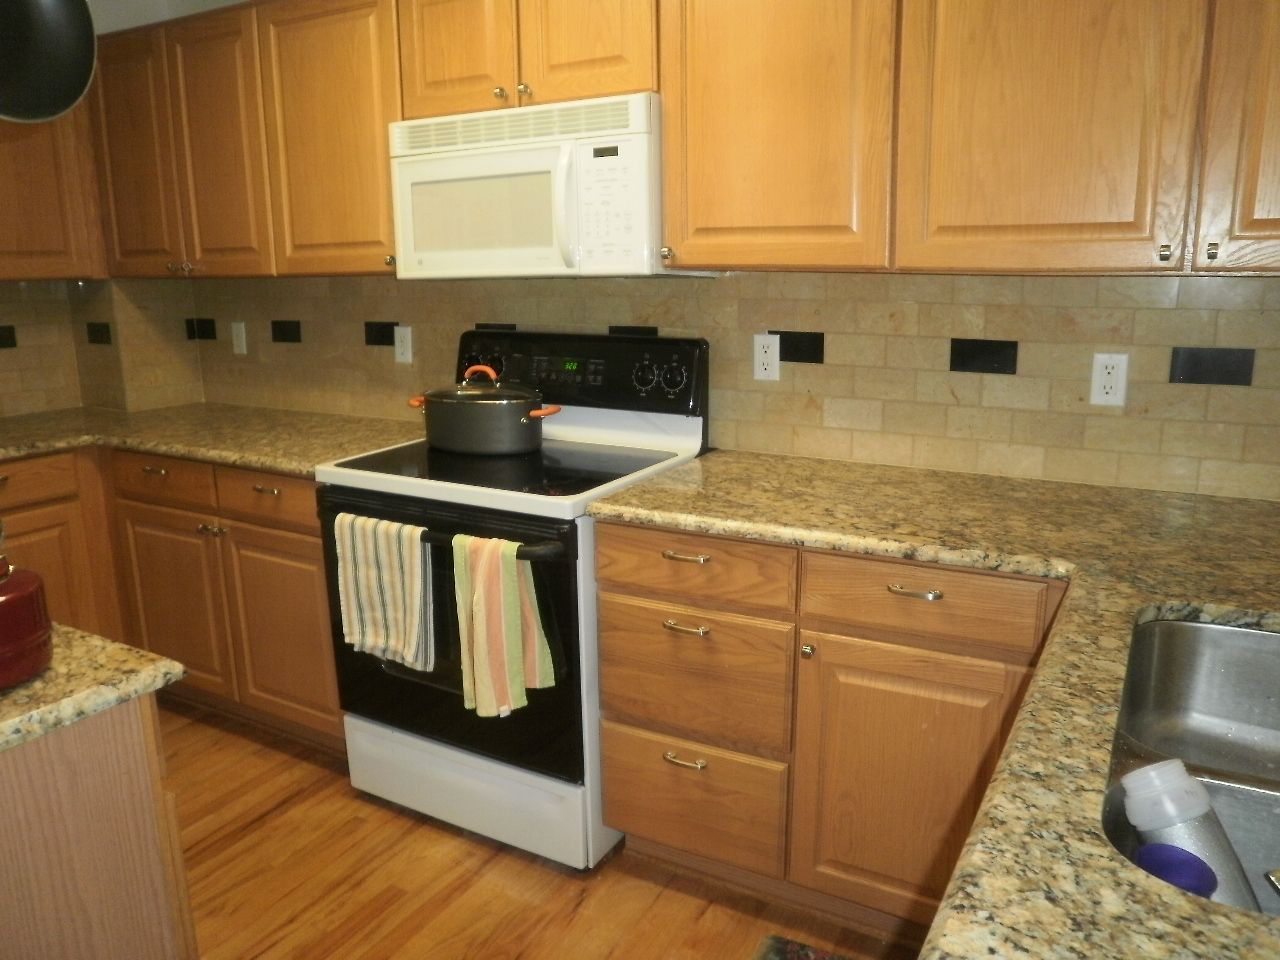 Light Oak Cabinets With Backsplashes Installations A Division Of Front Range Backsplash